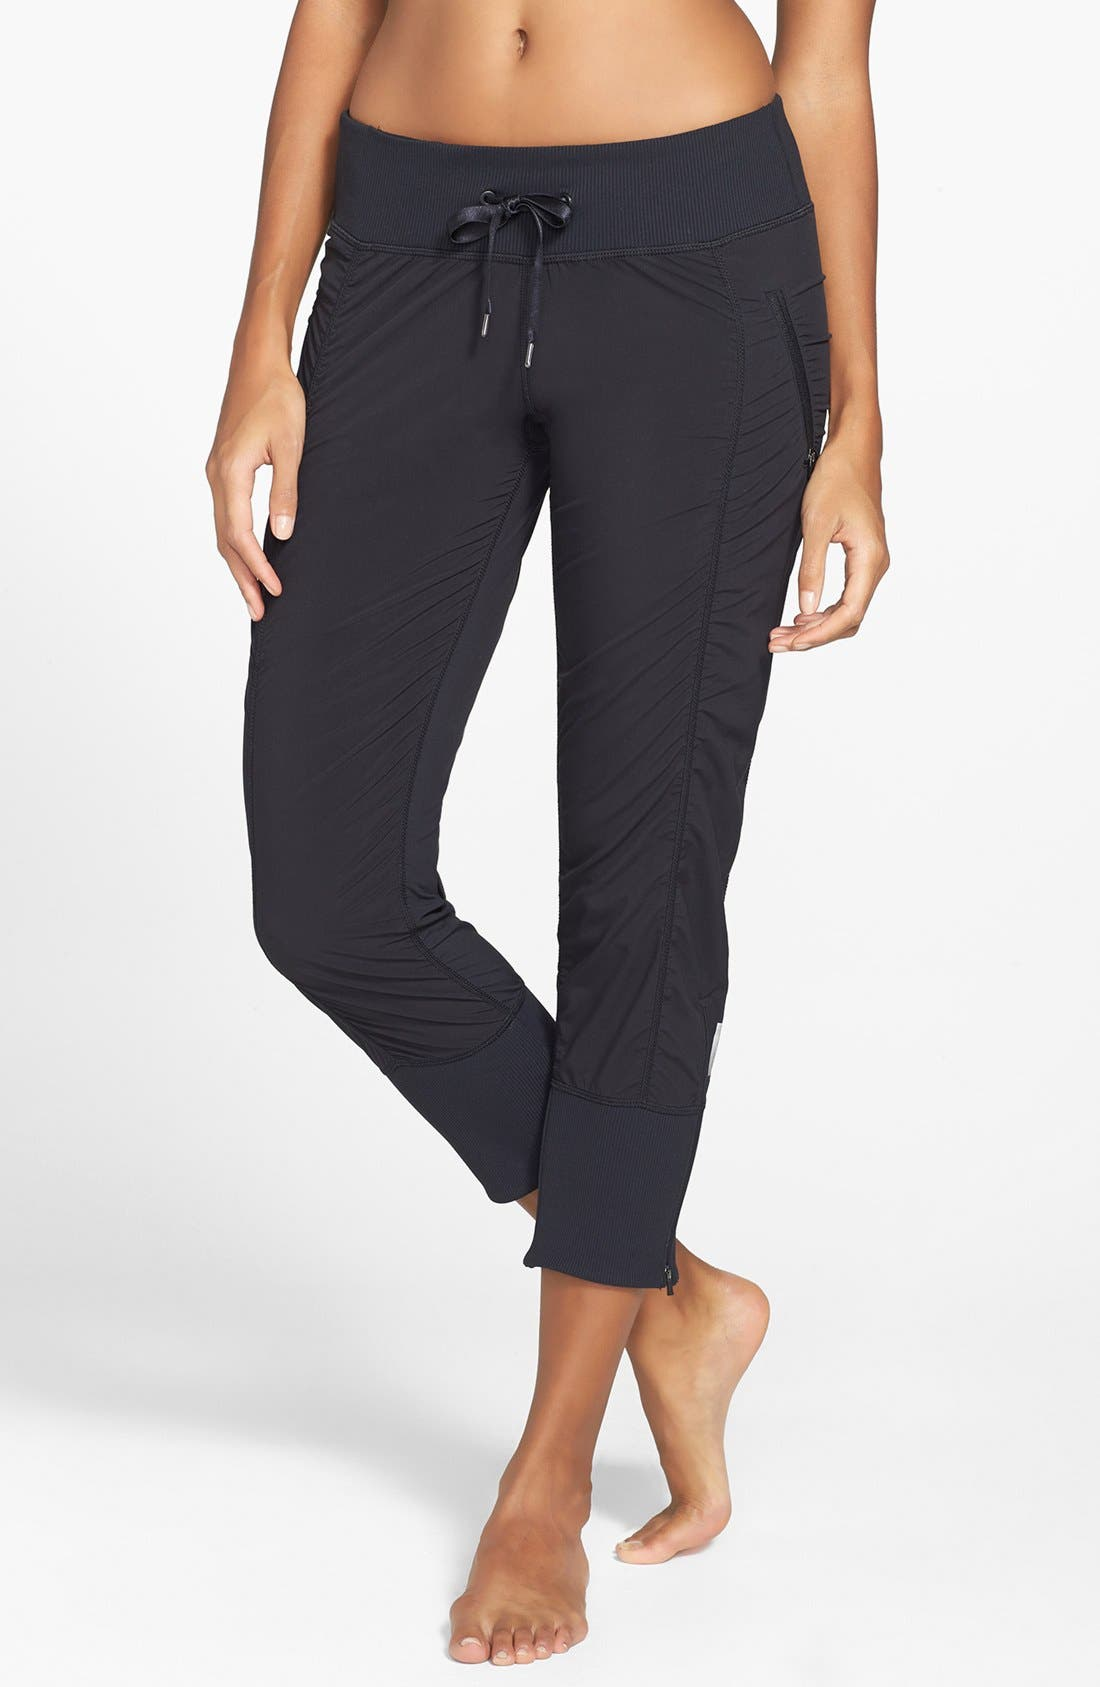 Alternate Image 1 Selected - Zella 'Move 2' Low Rise Capris